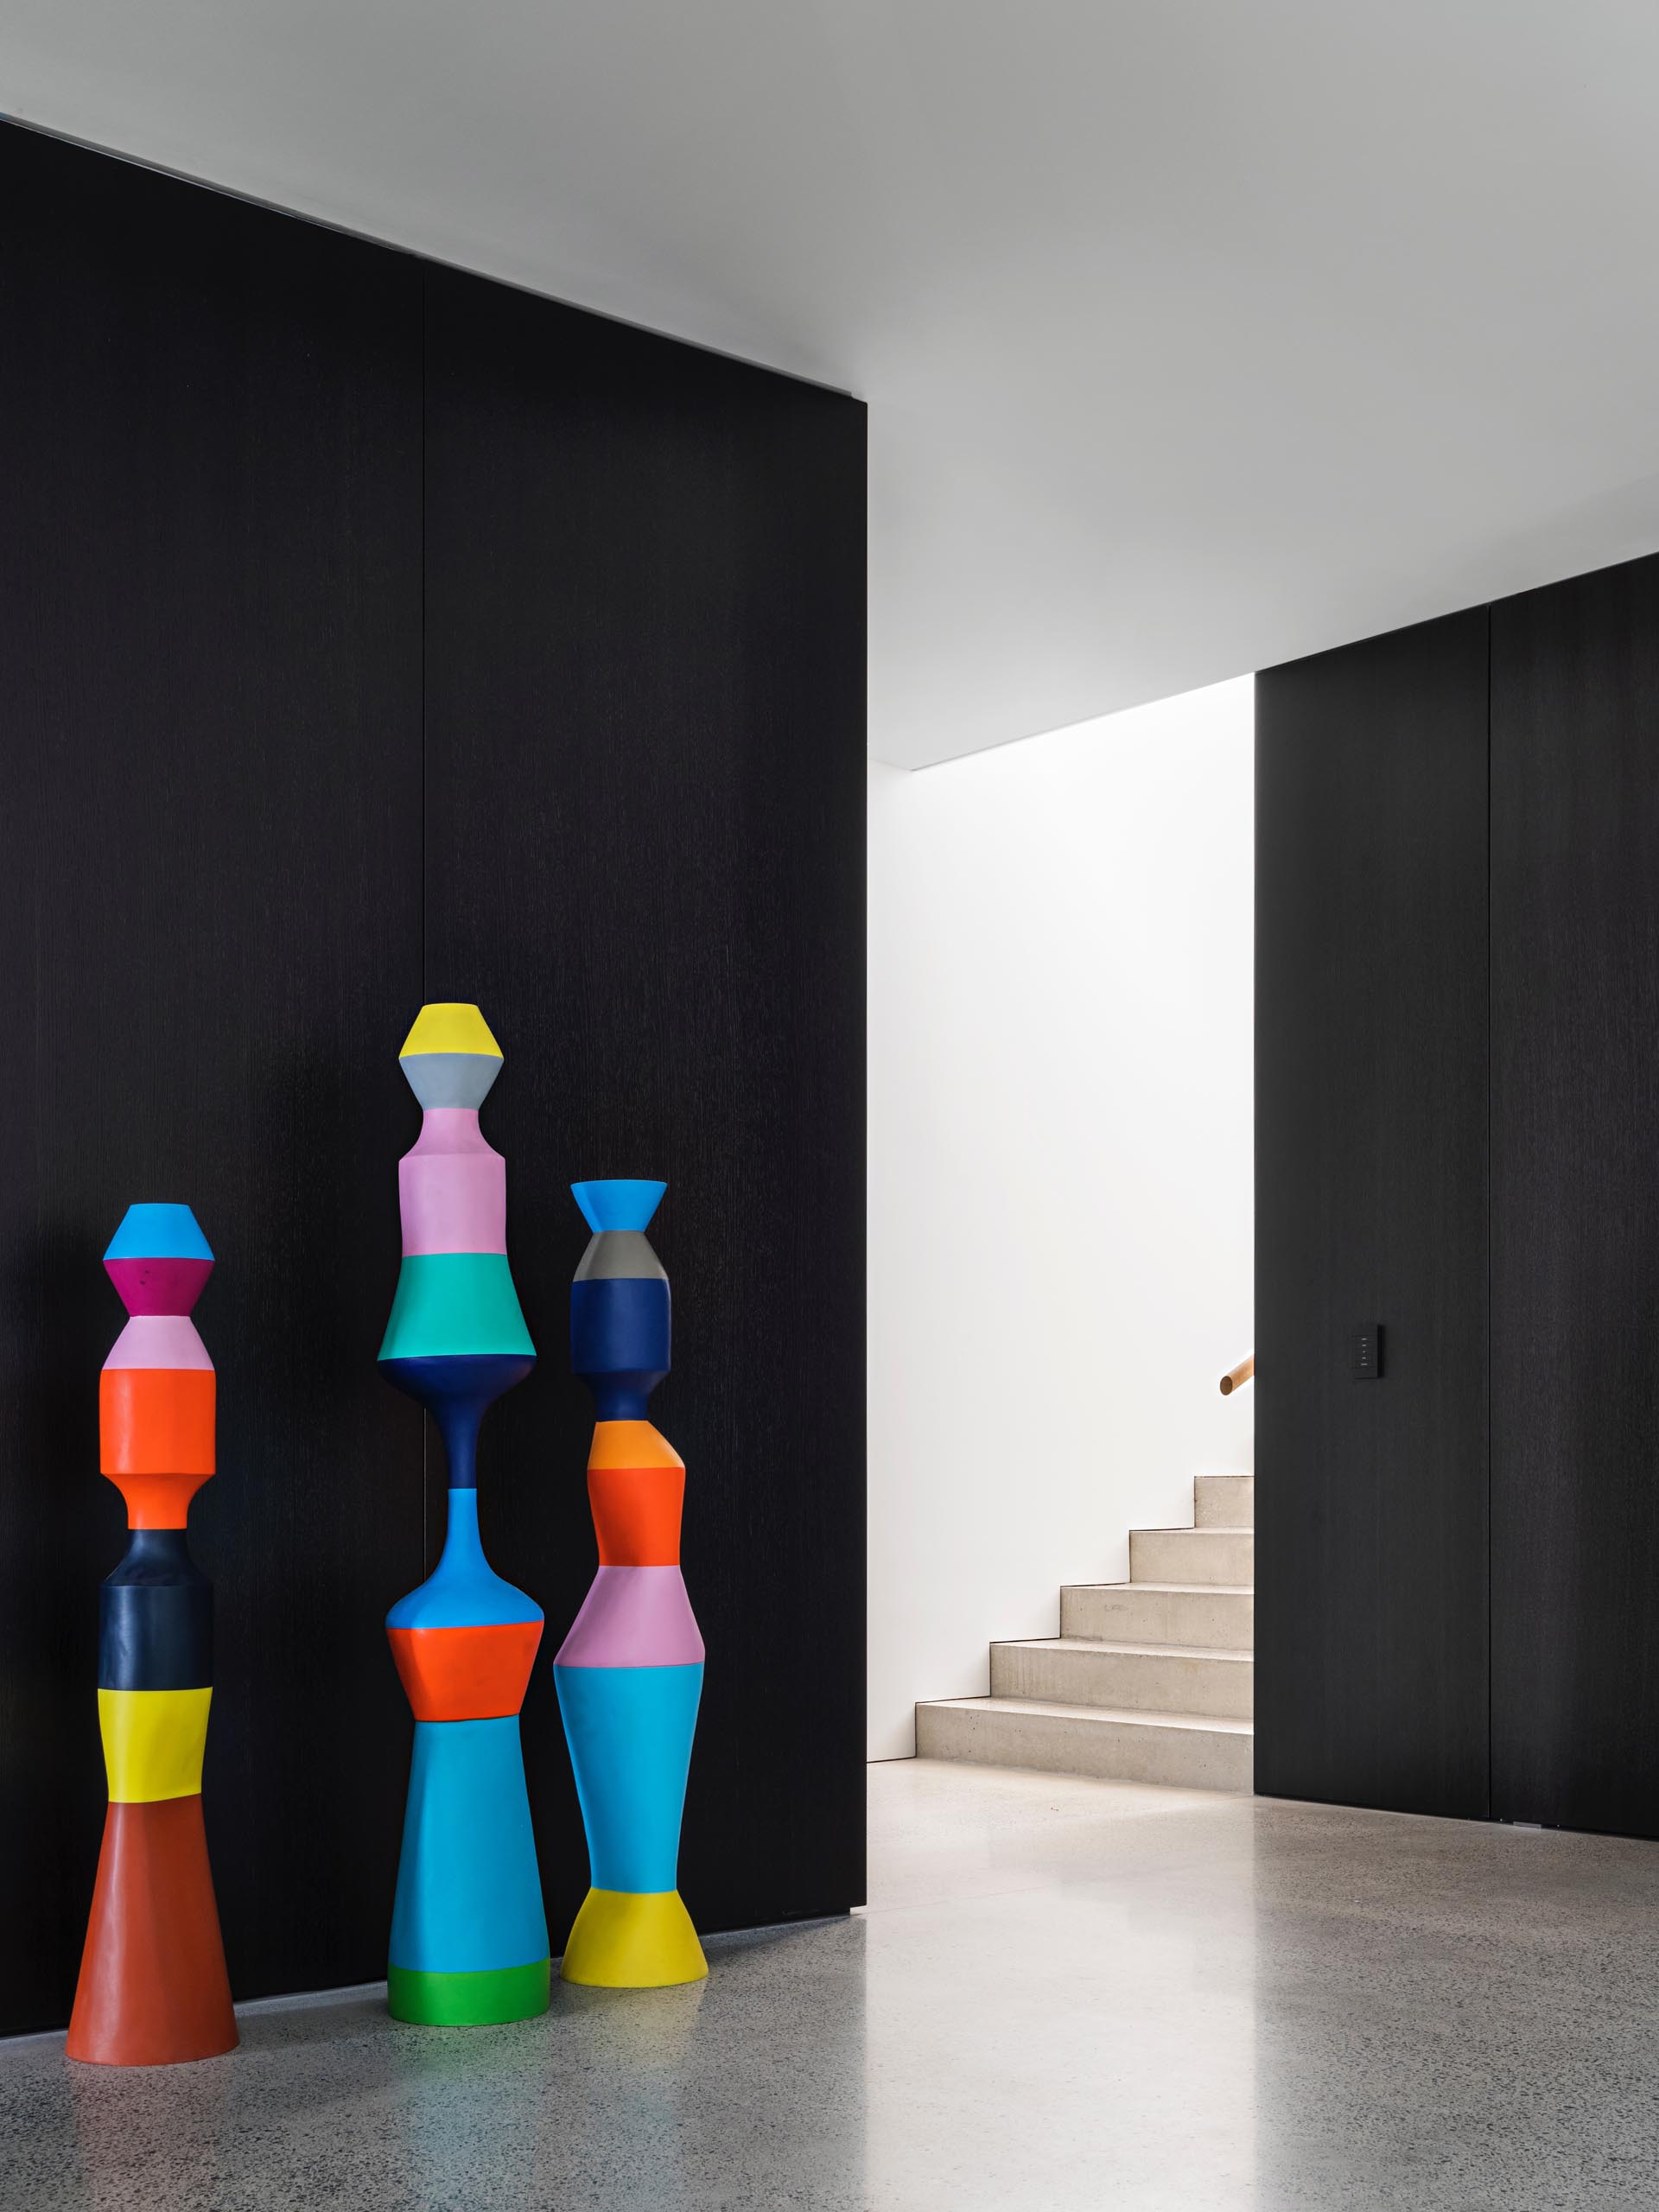 A modern interior with colorful sculptures against a black wall.